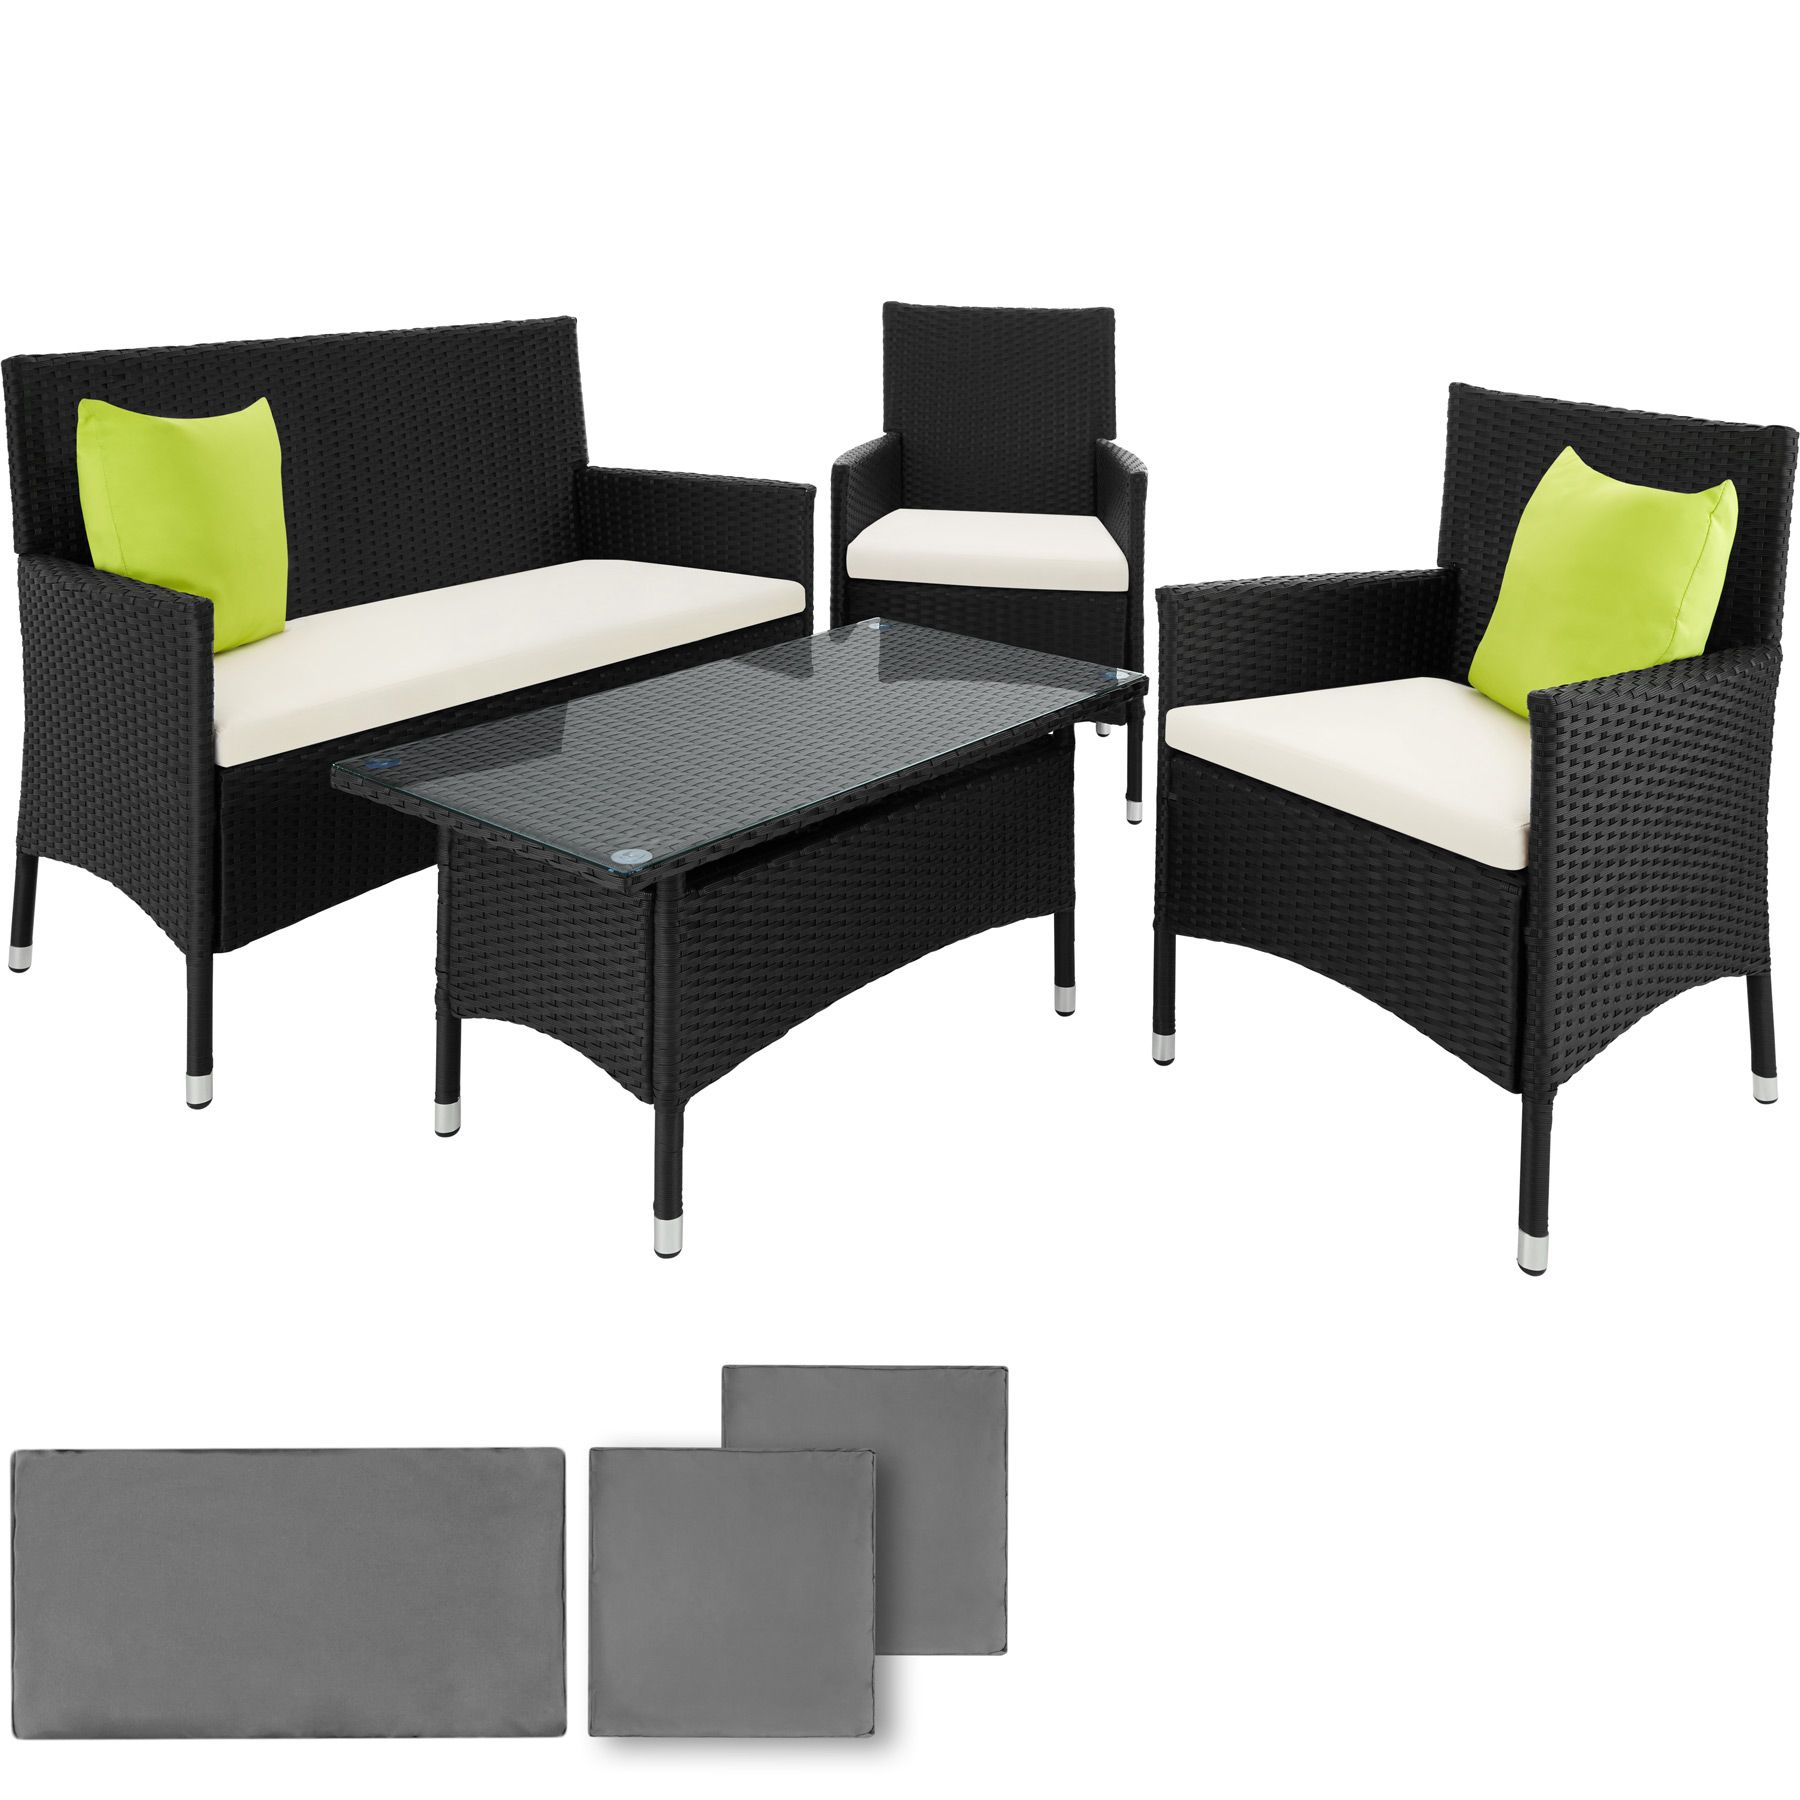 Polyrattan Bank Details About Poly Rattan Aluminium Garden Furniture 2 Chairs Bench Table Set Outdoor Wicker